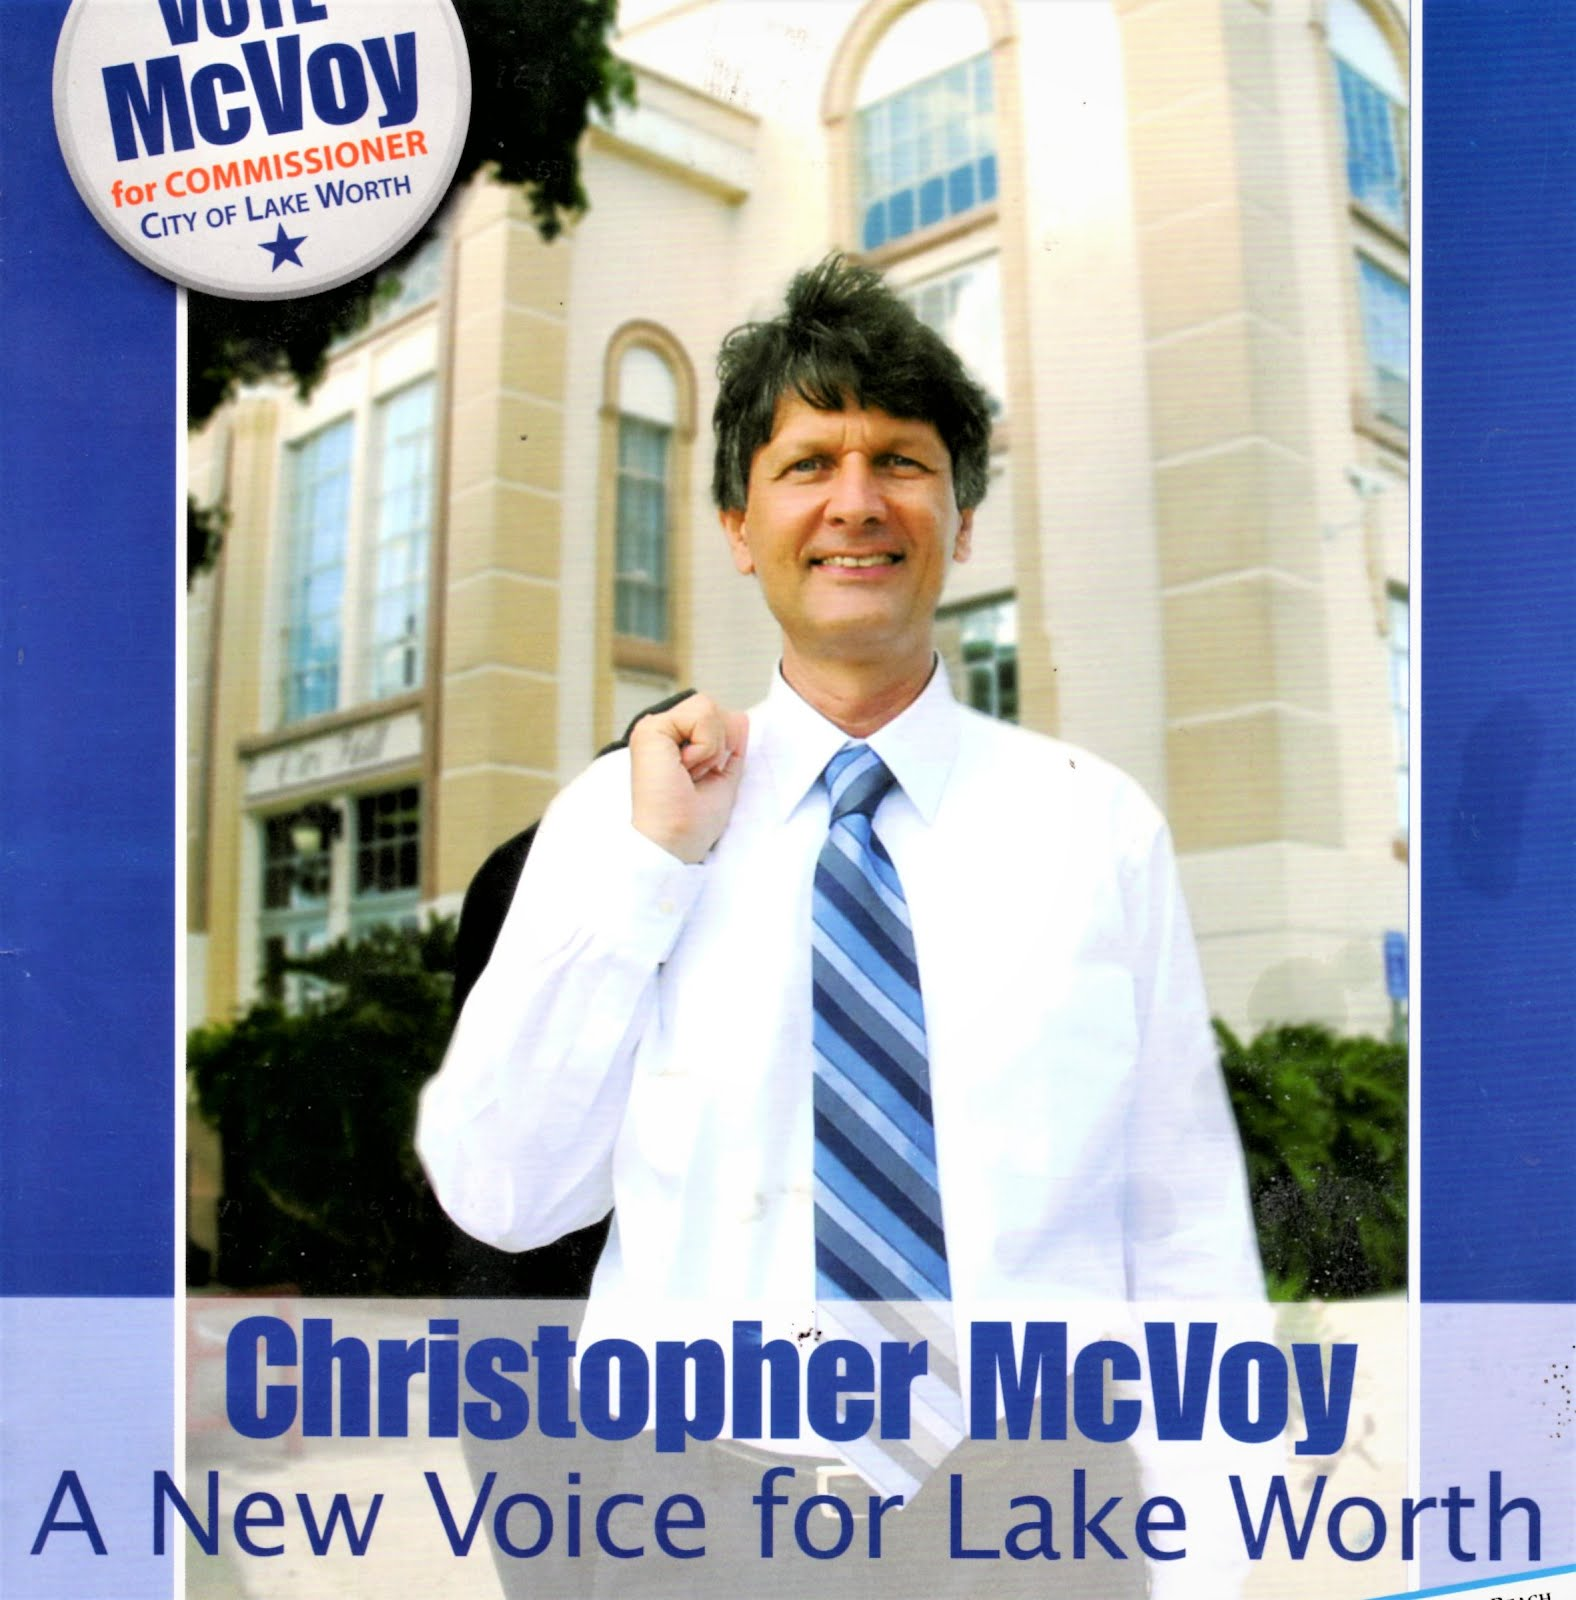 Speculation grows: Will McVoy run for mayor in 2021? Click on mailer: